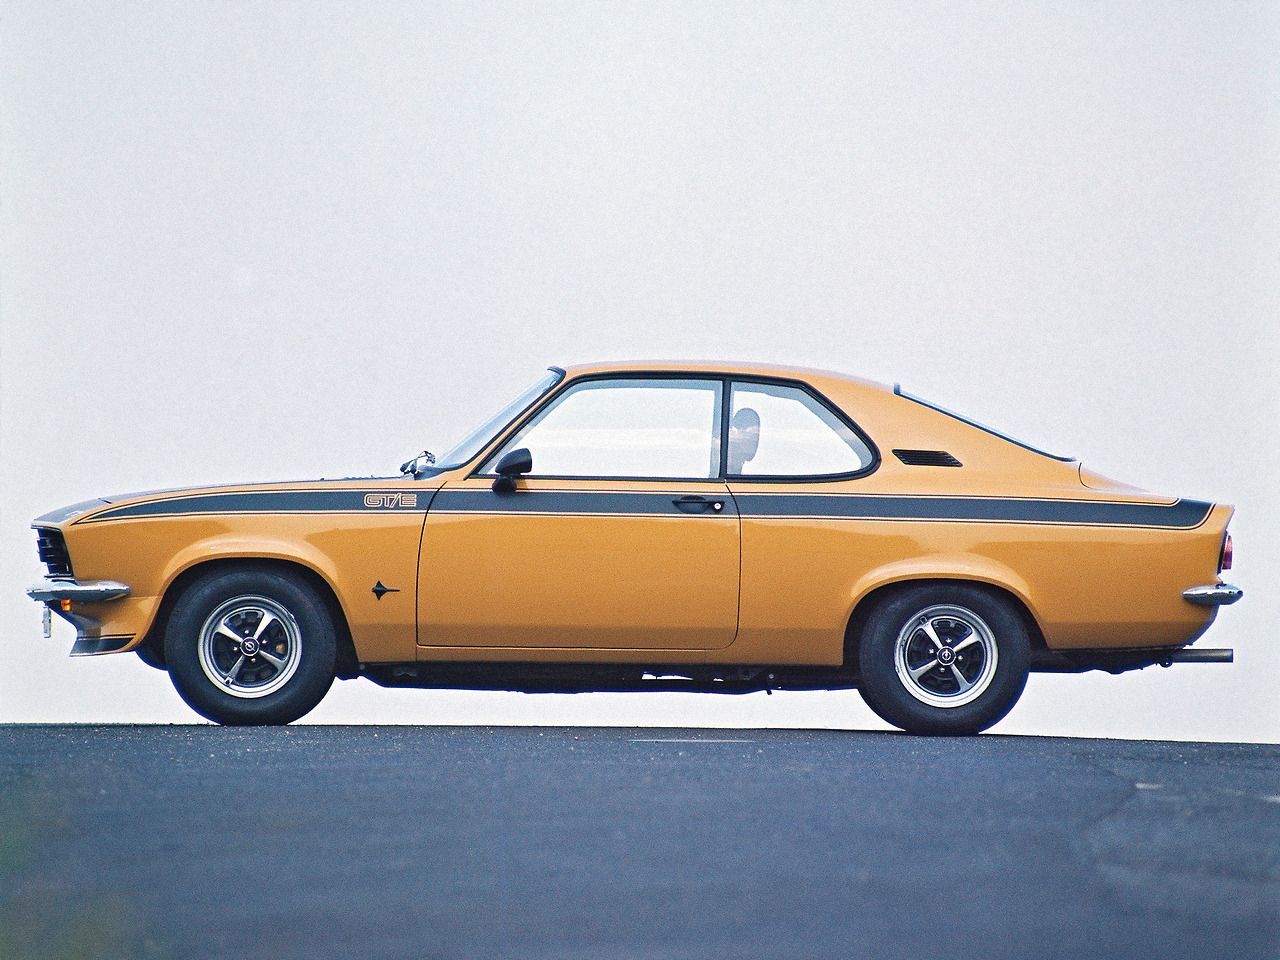 Image illustrative de l article opel ascona - Image Illustrative De L Article Opel Ascona 15